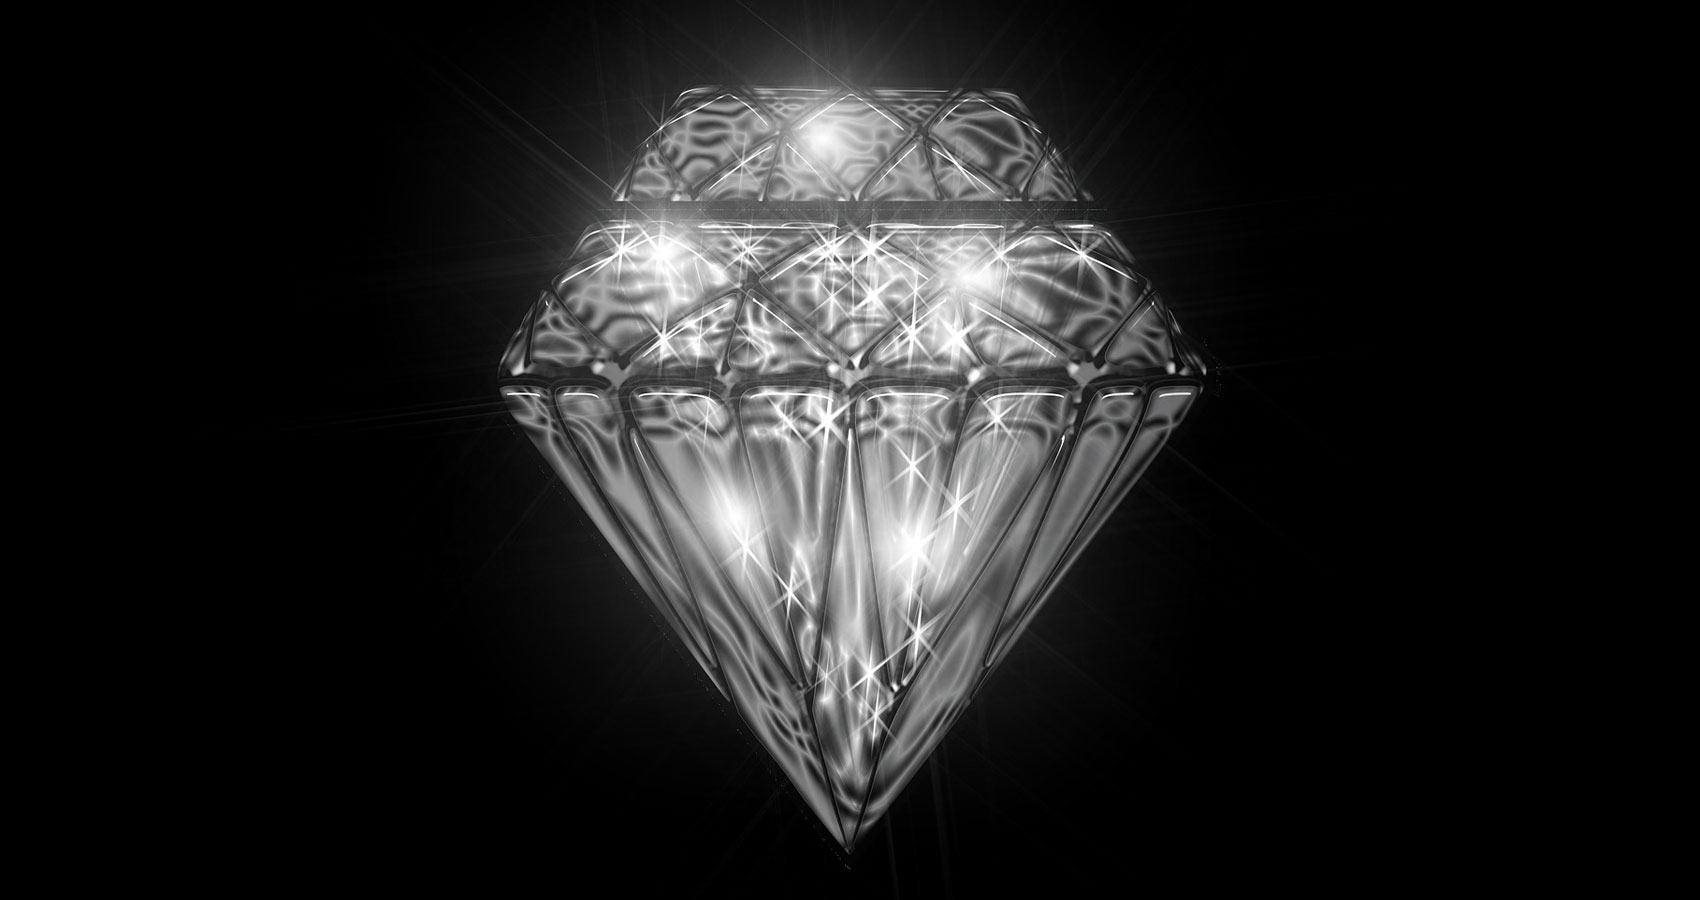 DIAMOND, poetry written by LUZVIMINDA G RIVERA at Spillwords.com